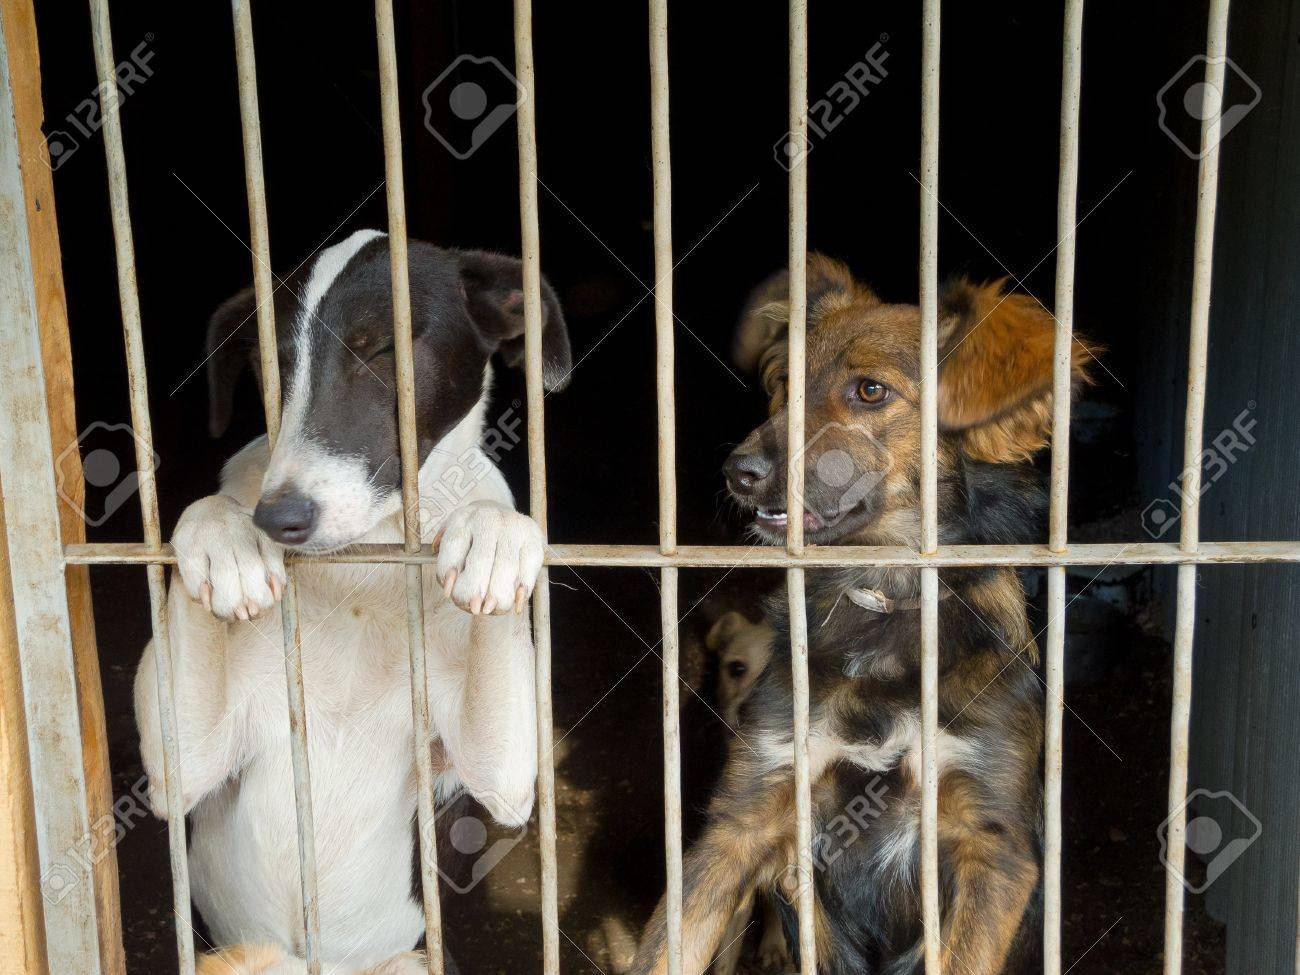 Stray dogs in the shelter - 21946914